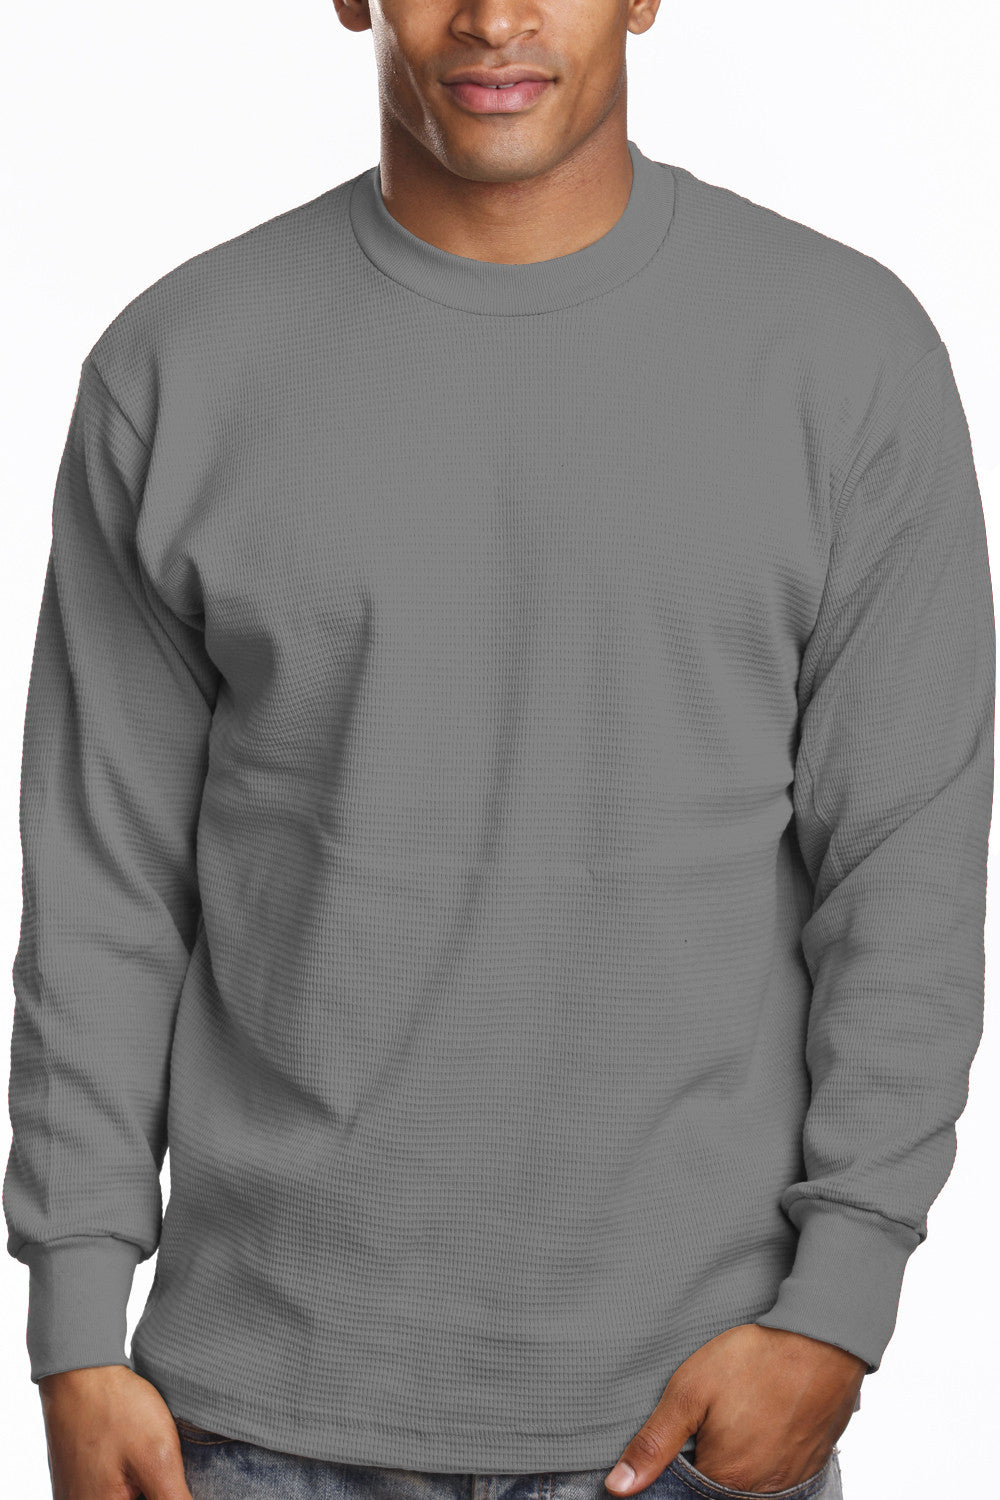 Thermal Knit Tops 2XL - 5XL - Pro 5 Apparel